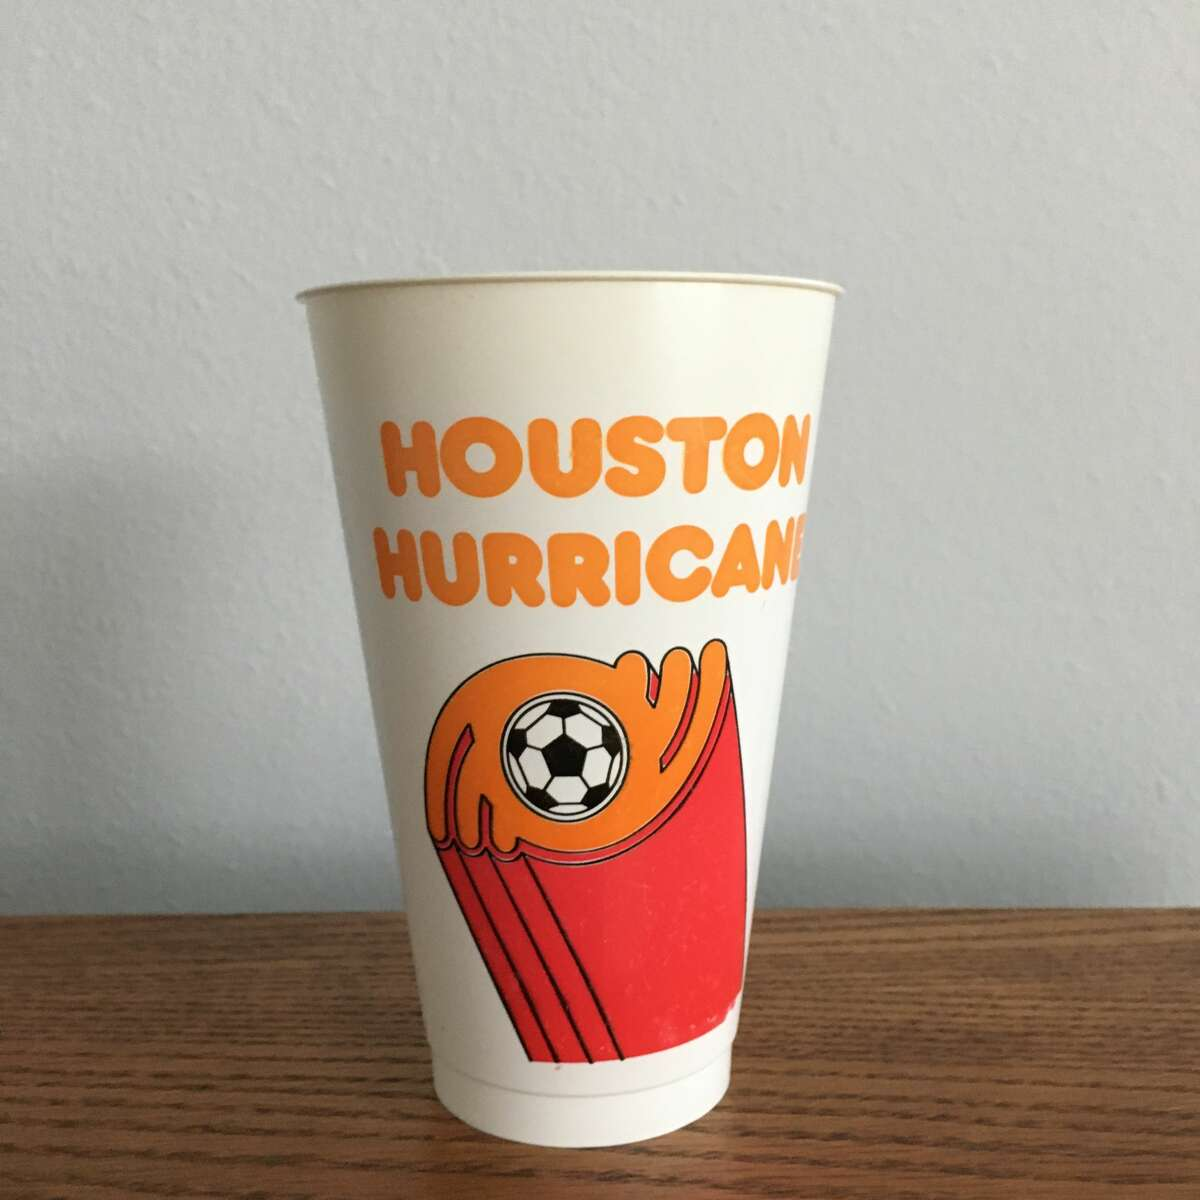 This tumbler from the 1970s bears the Houston Hurricane logo, a short-lived Houston soccer team that played from just 1978 to 1980.